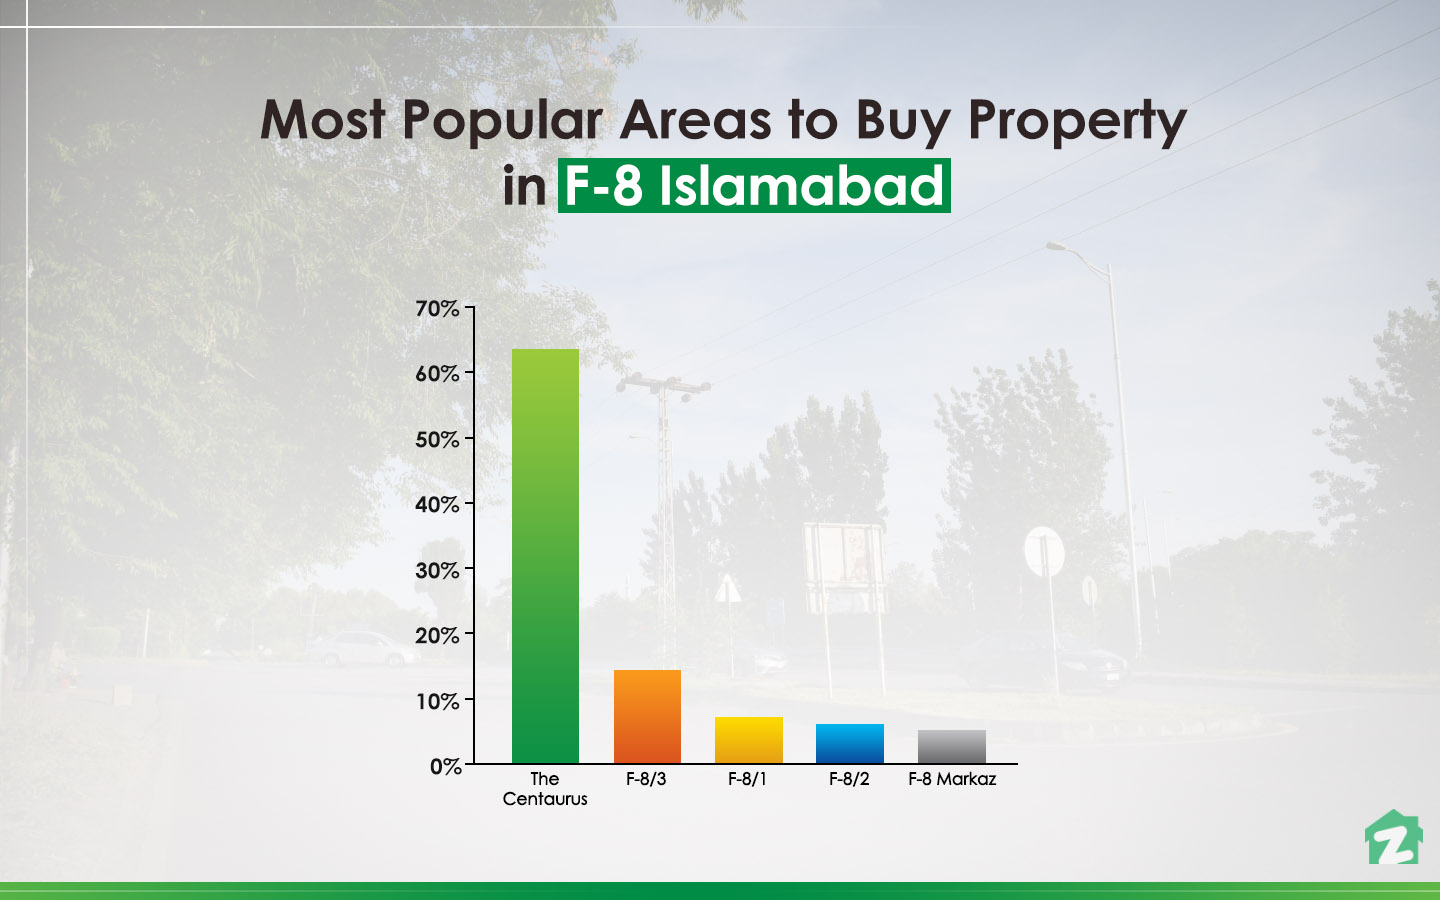 For buying properties, Centaurus Mall is the most popular area of F-8, Islamabad